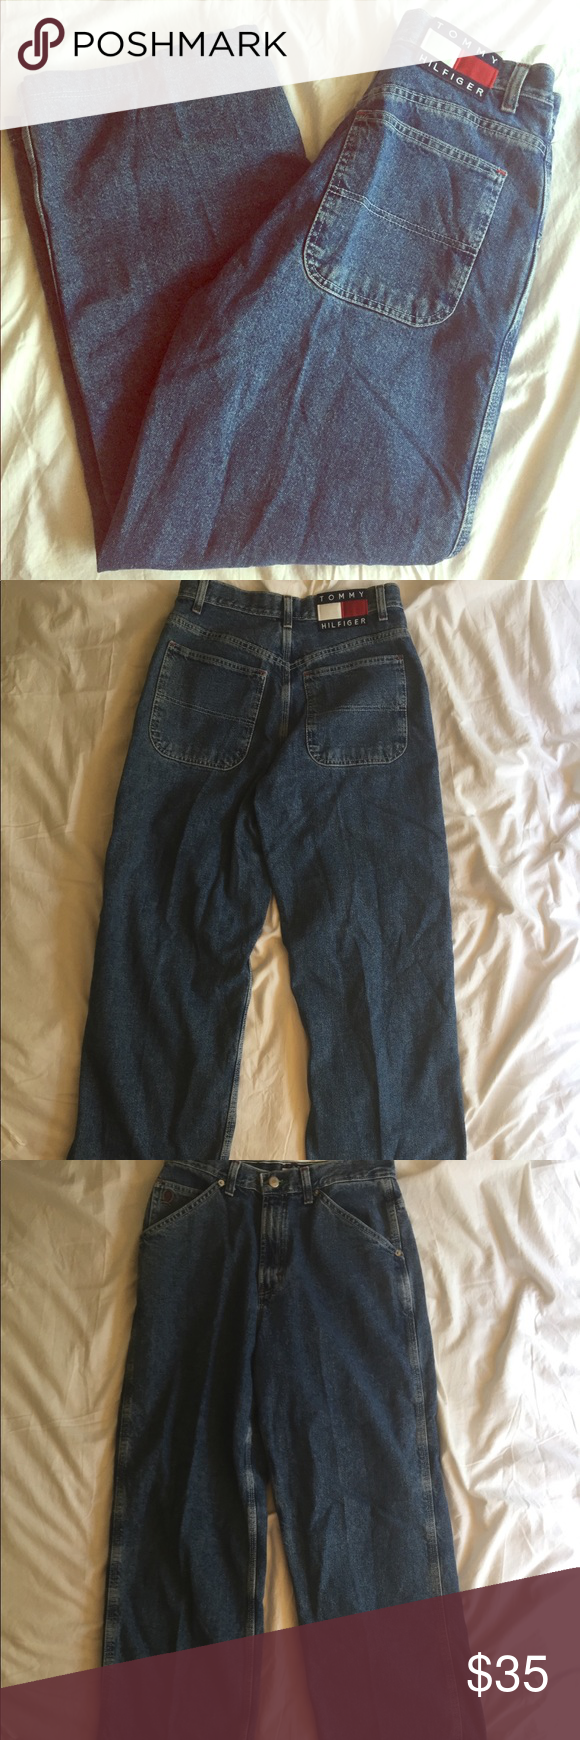 3d74a314 Tommy Hilfiger High Waisted Mom Jeans Women's Size 8 Carpenter Jeans. A  blast from the